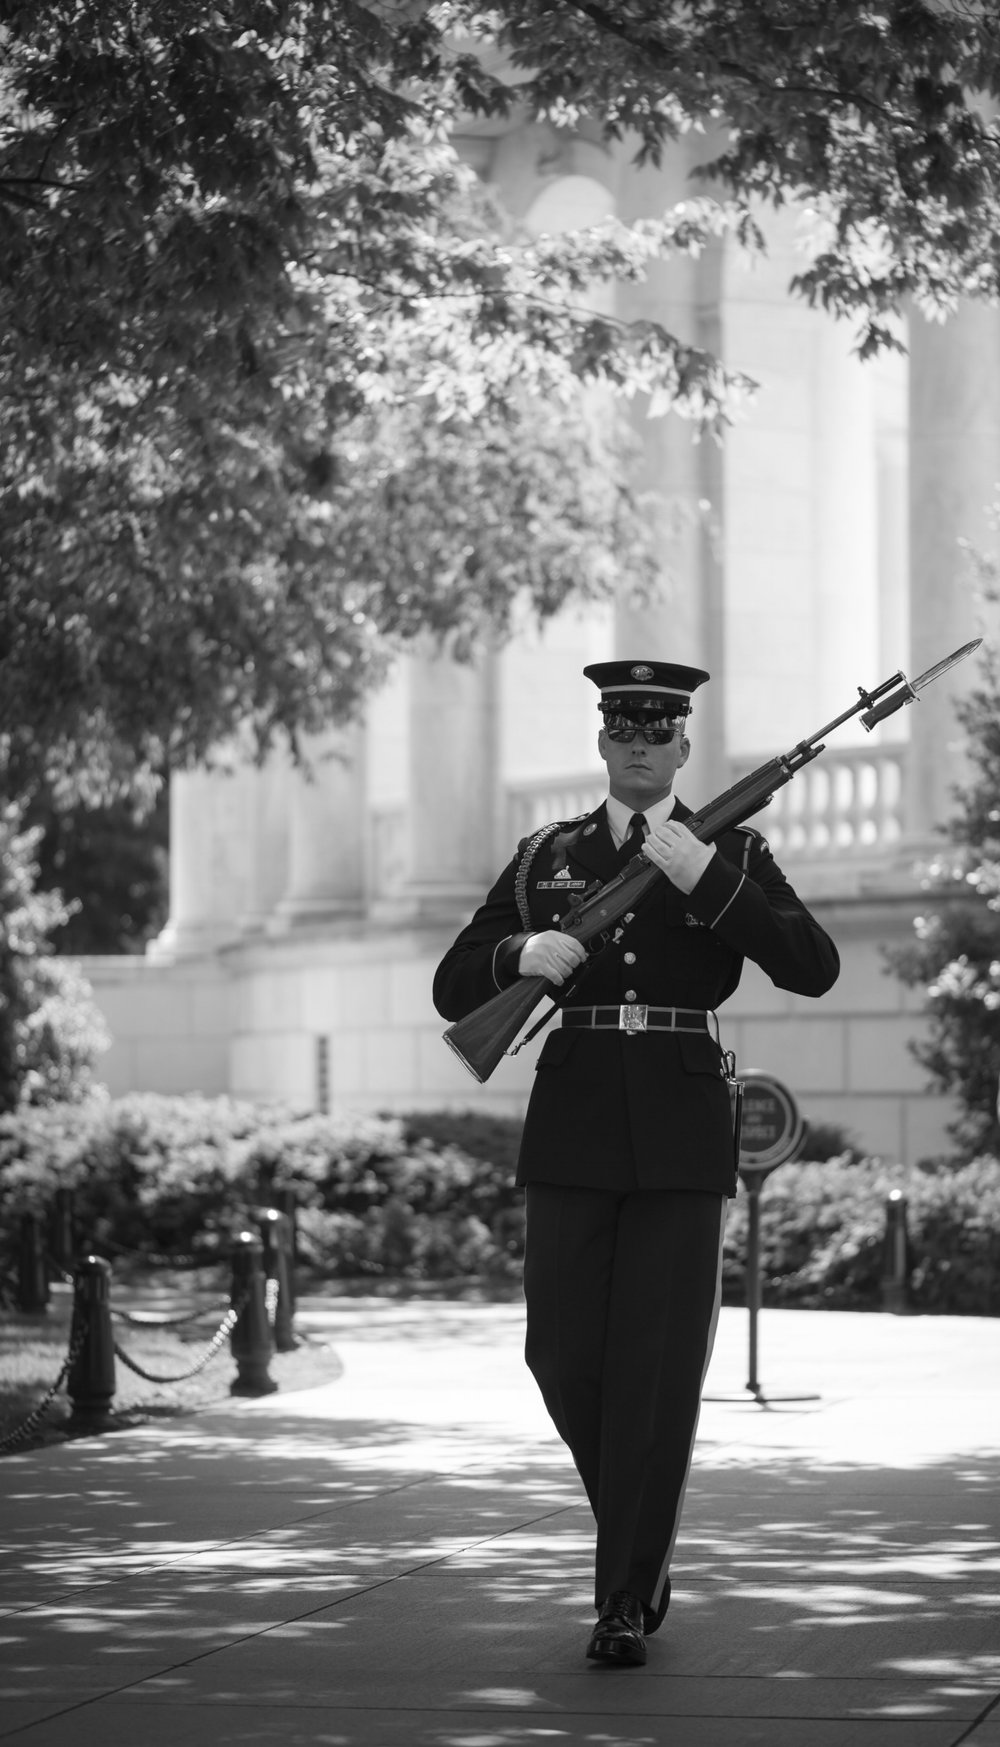 Heroes Tomb of Unknown Soldier.jpg